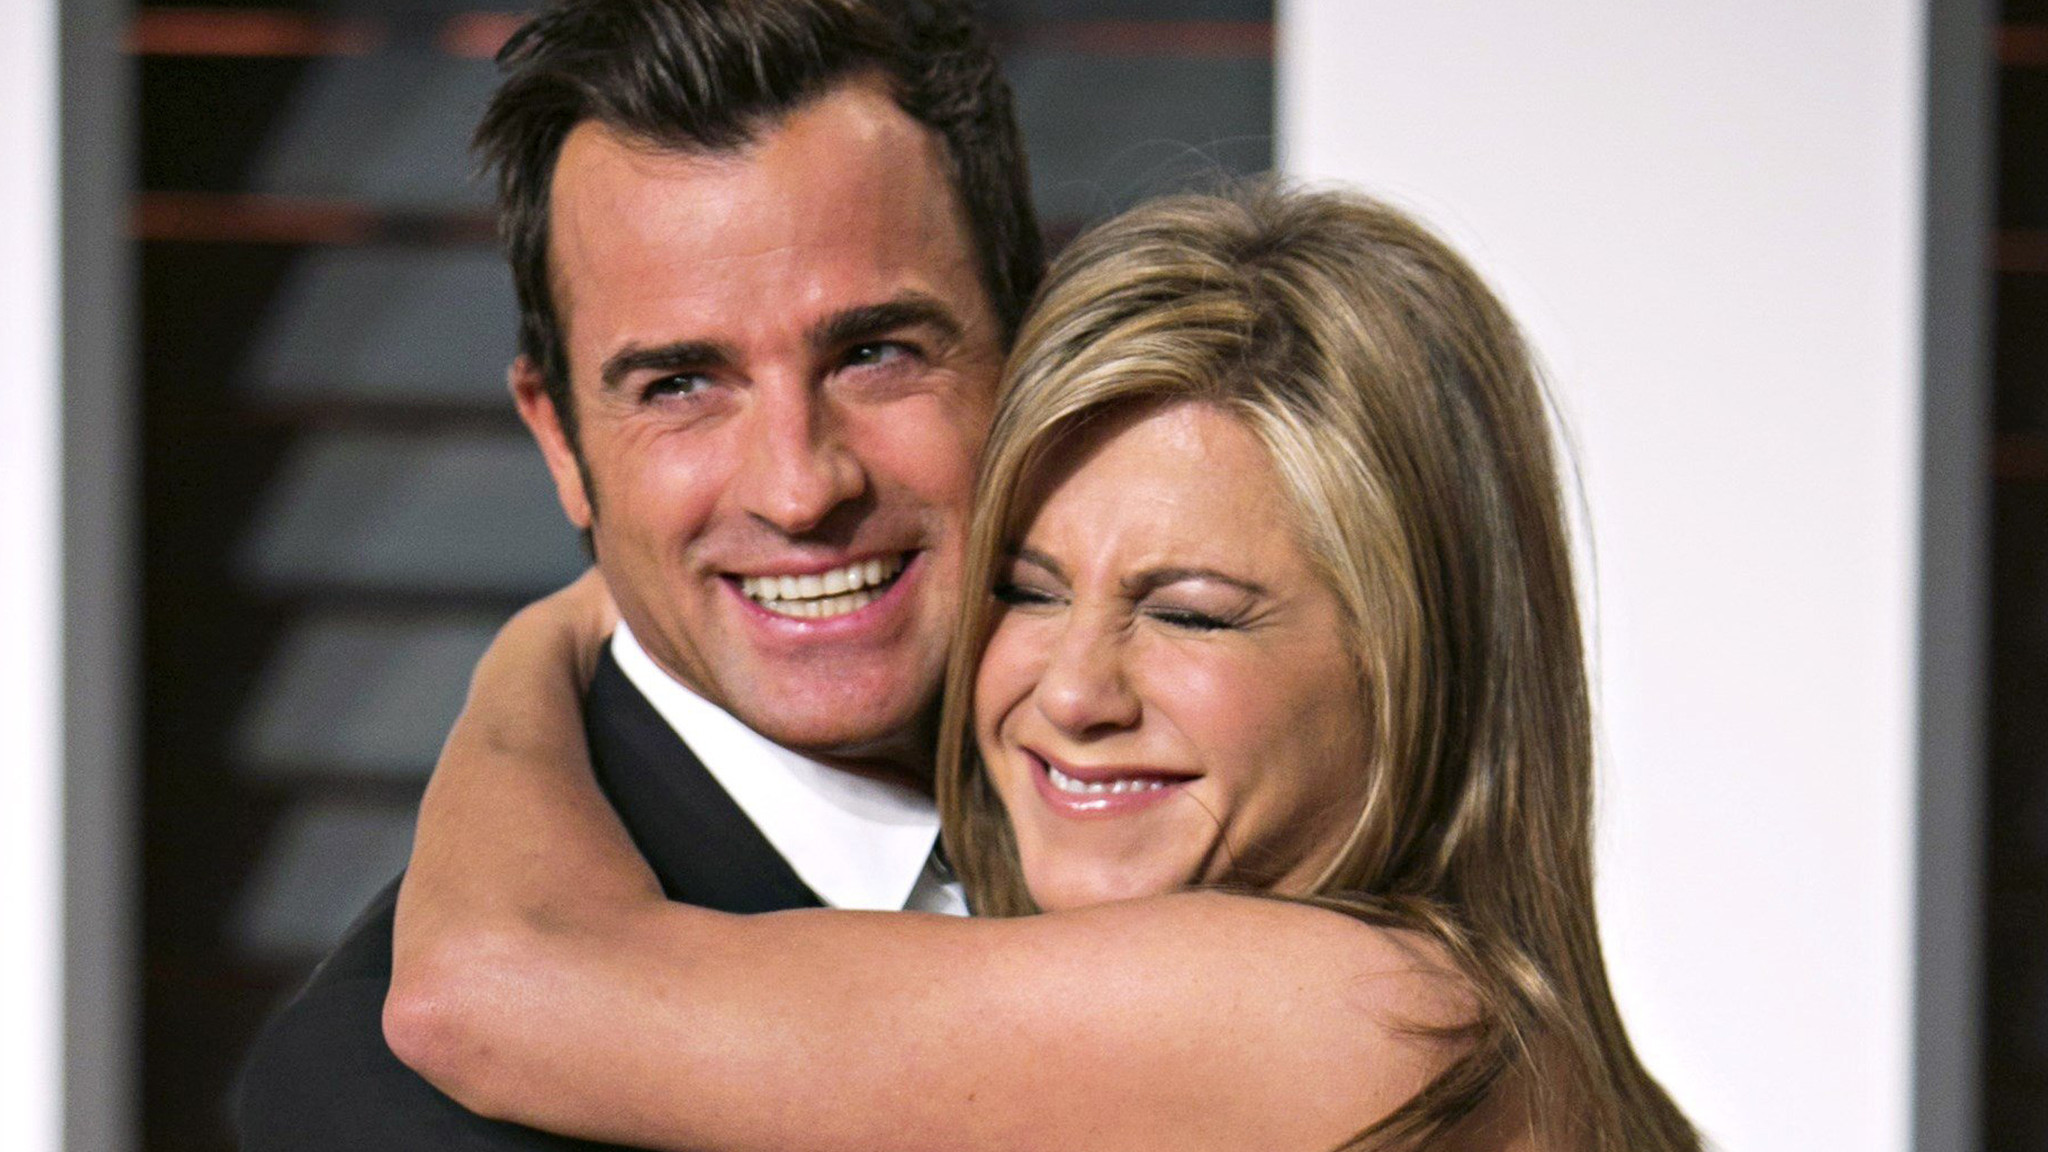 Jennifer Aniston And Justin Theroux Pull Off A Surprise